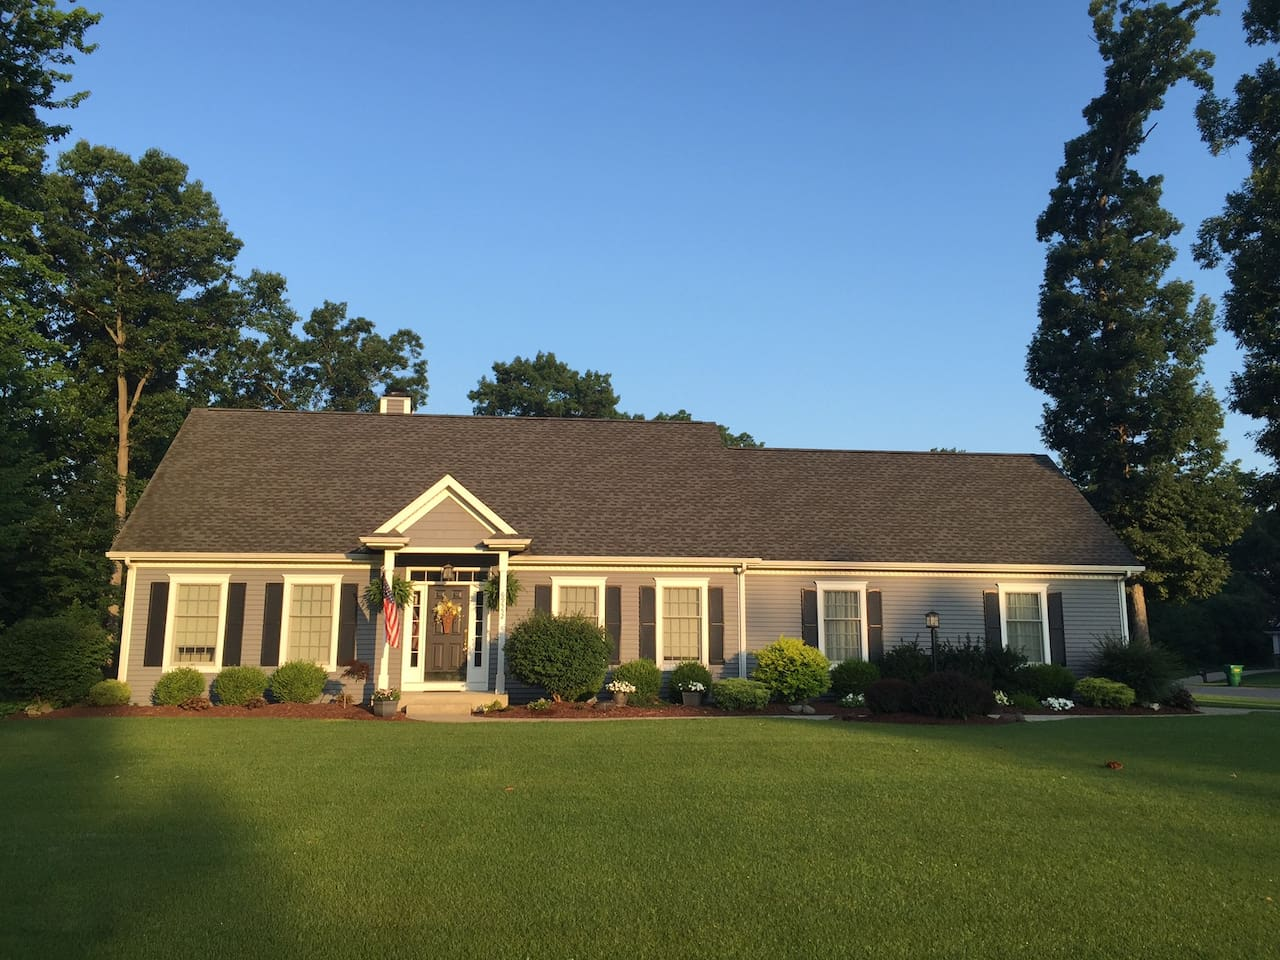 Recently built colonial cape home in quiet subdivision